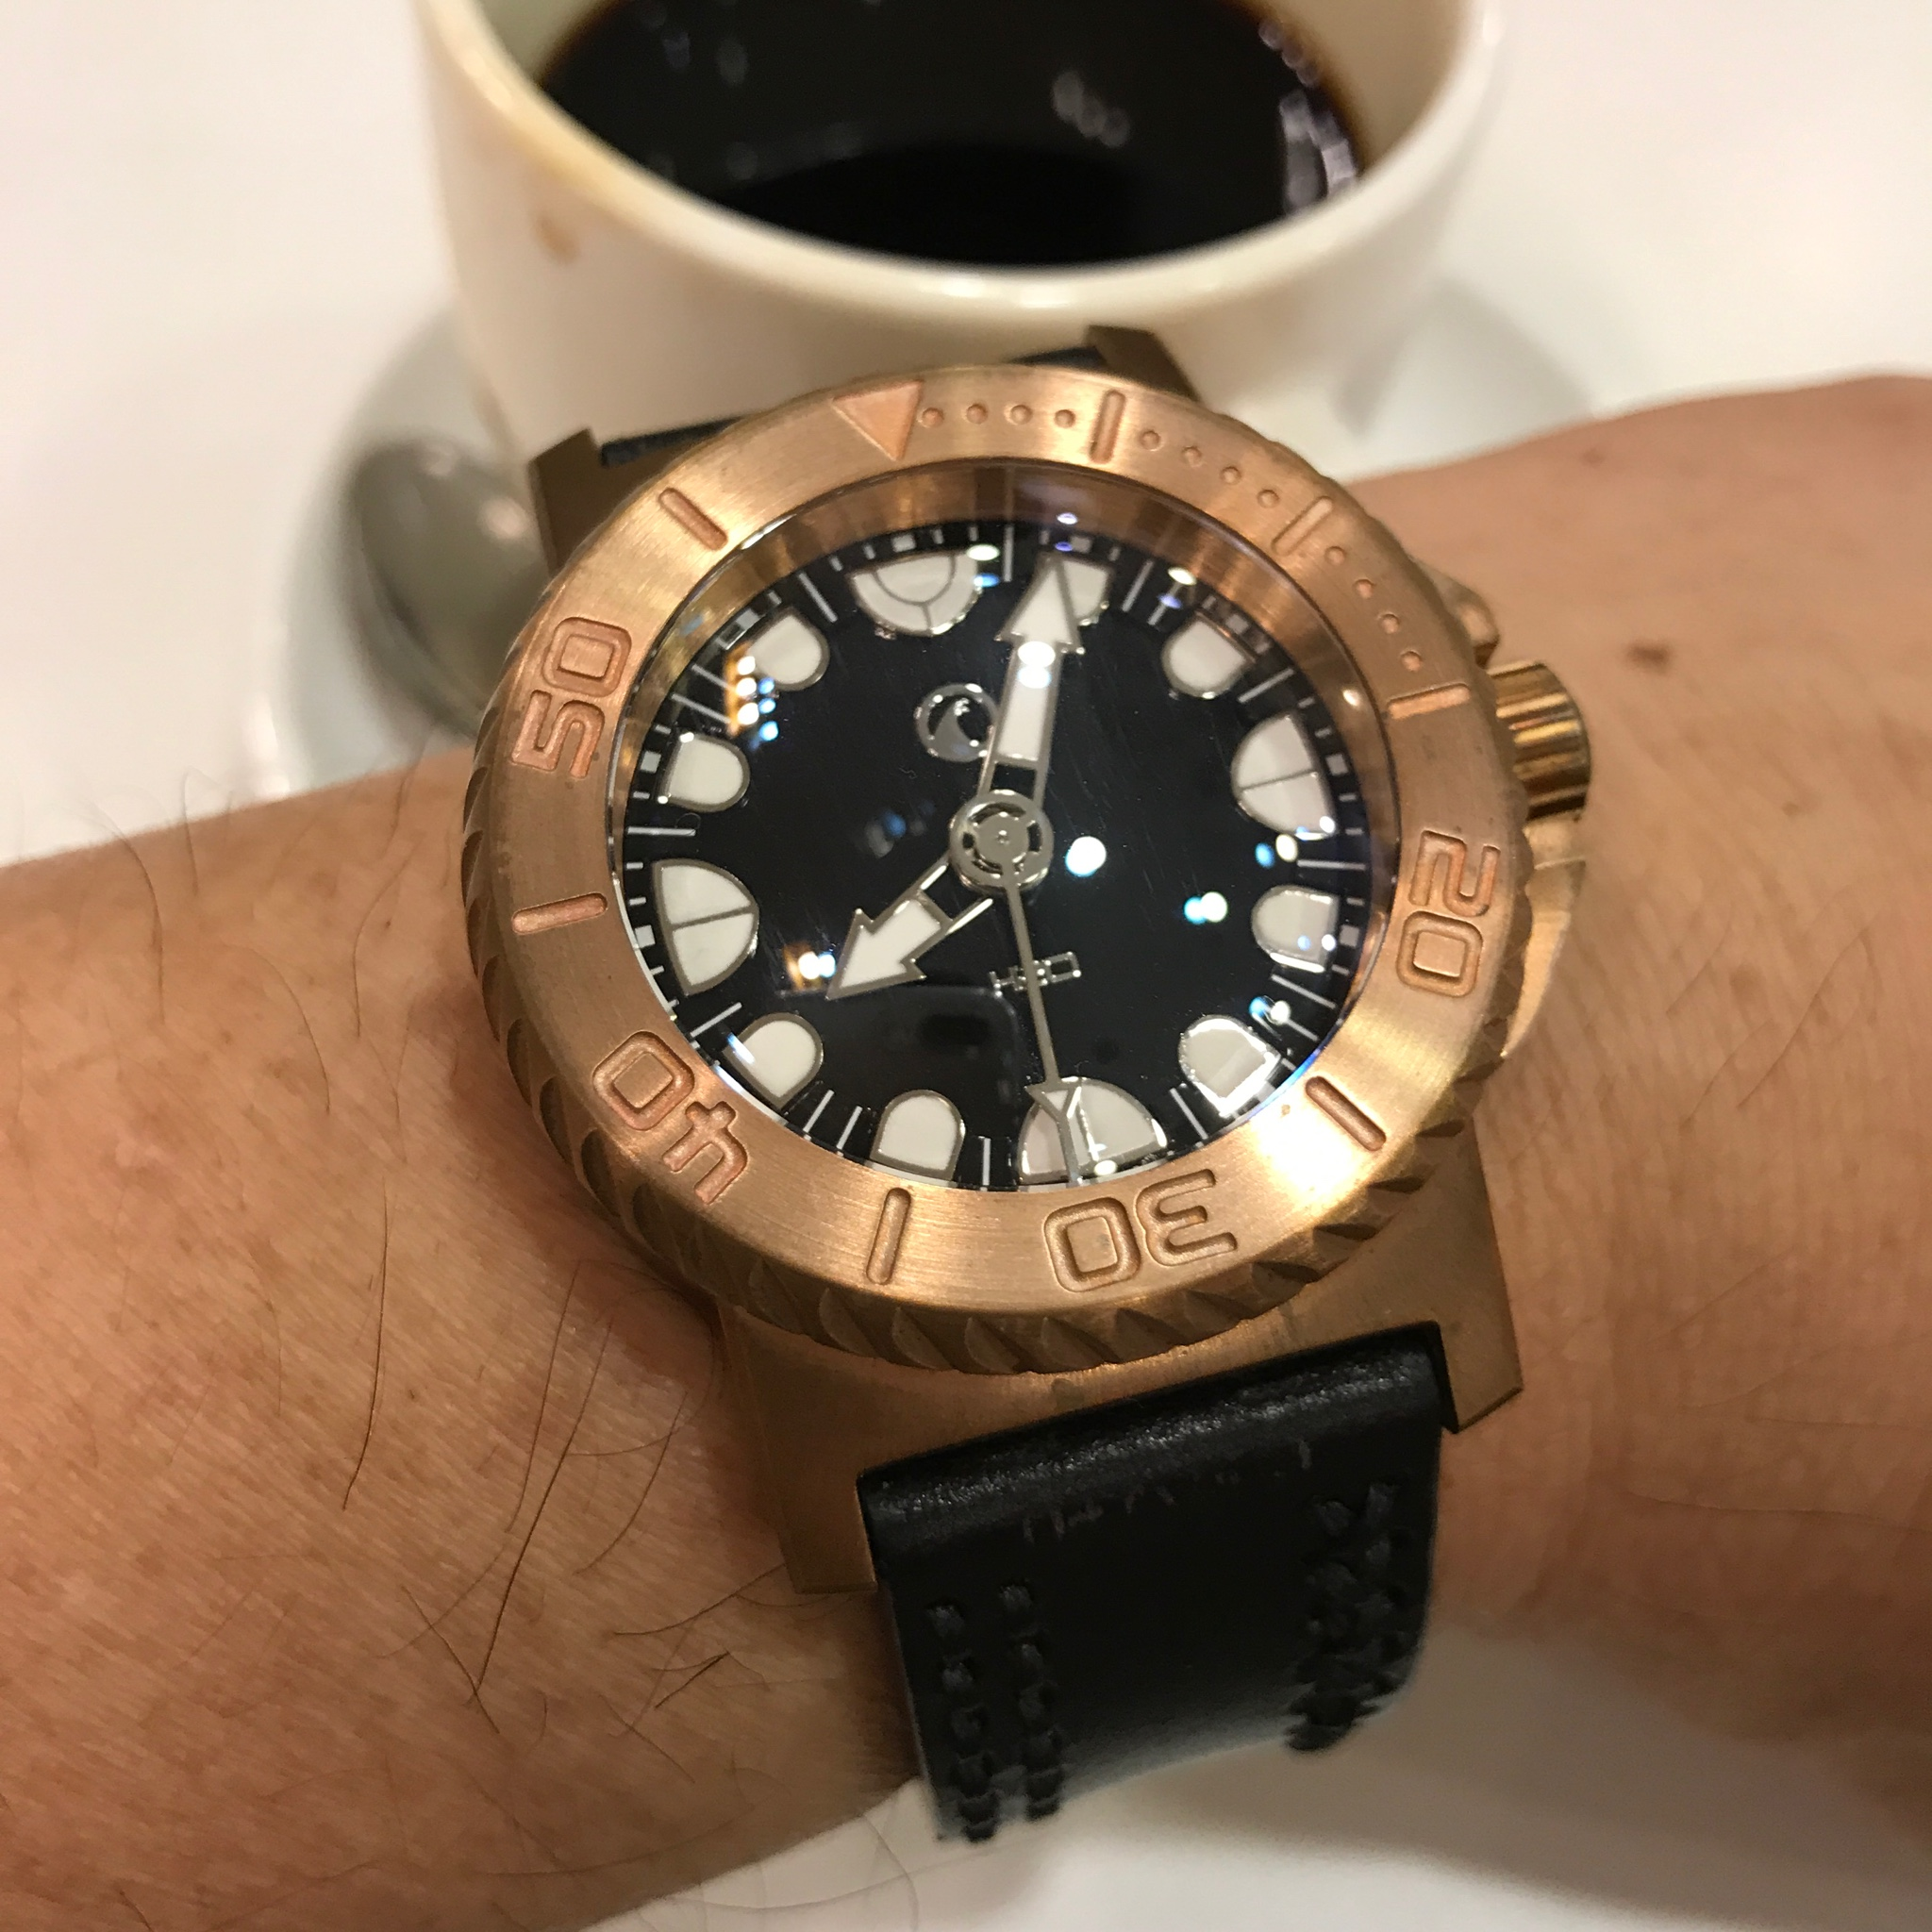 sokwo trident christopher pro gmt fr watches orca ward